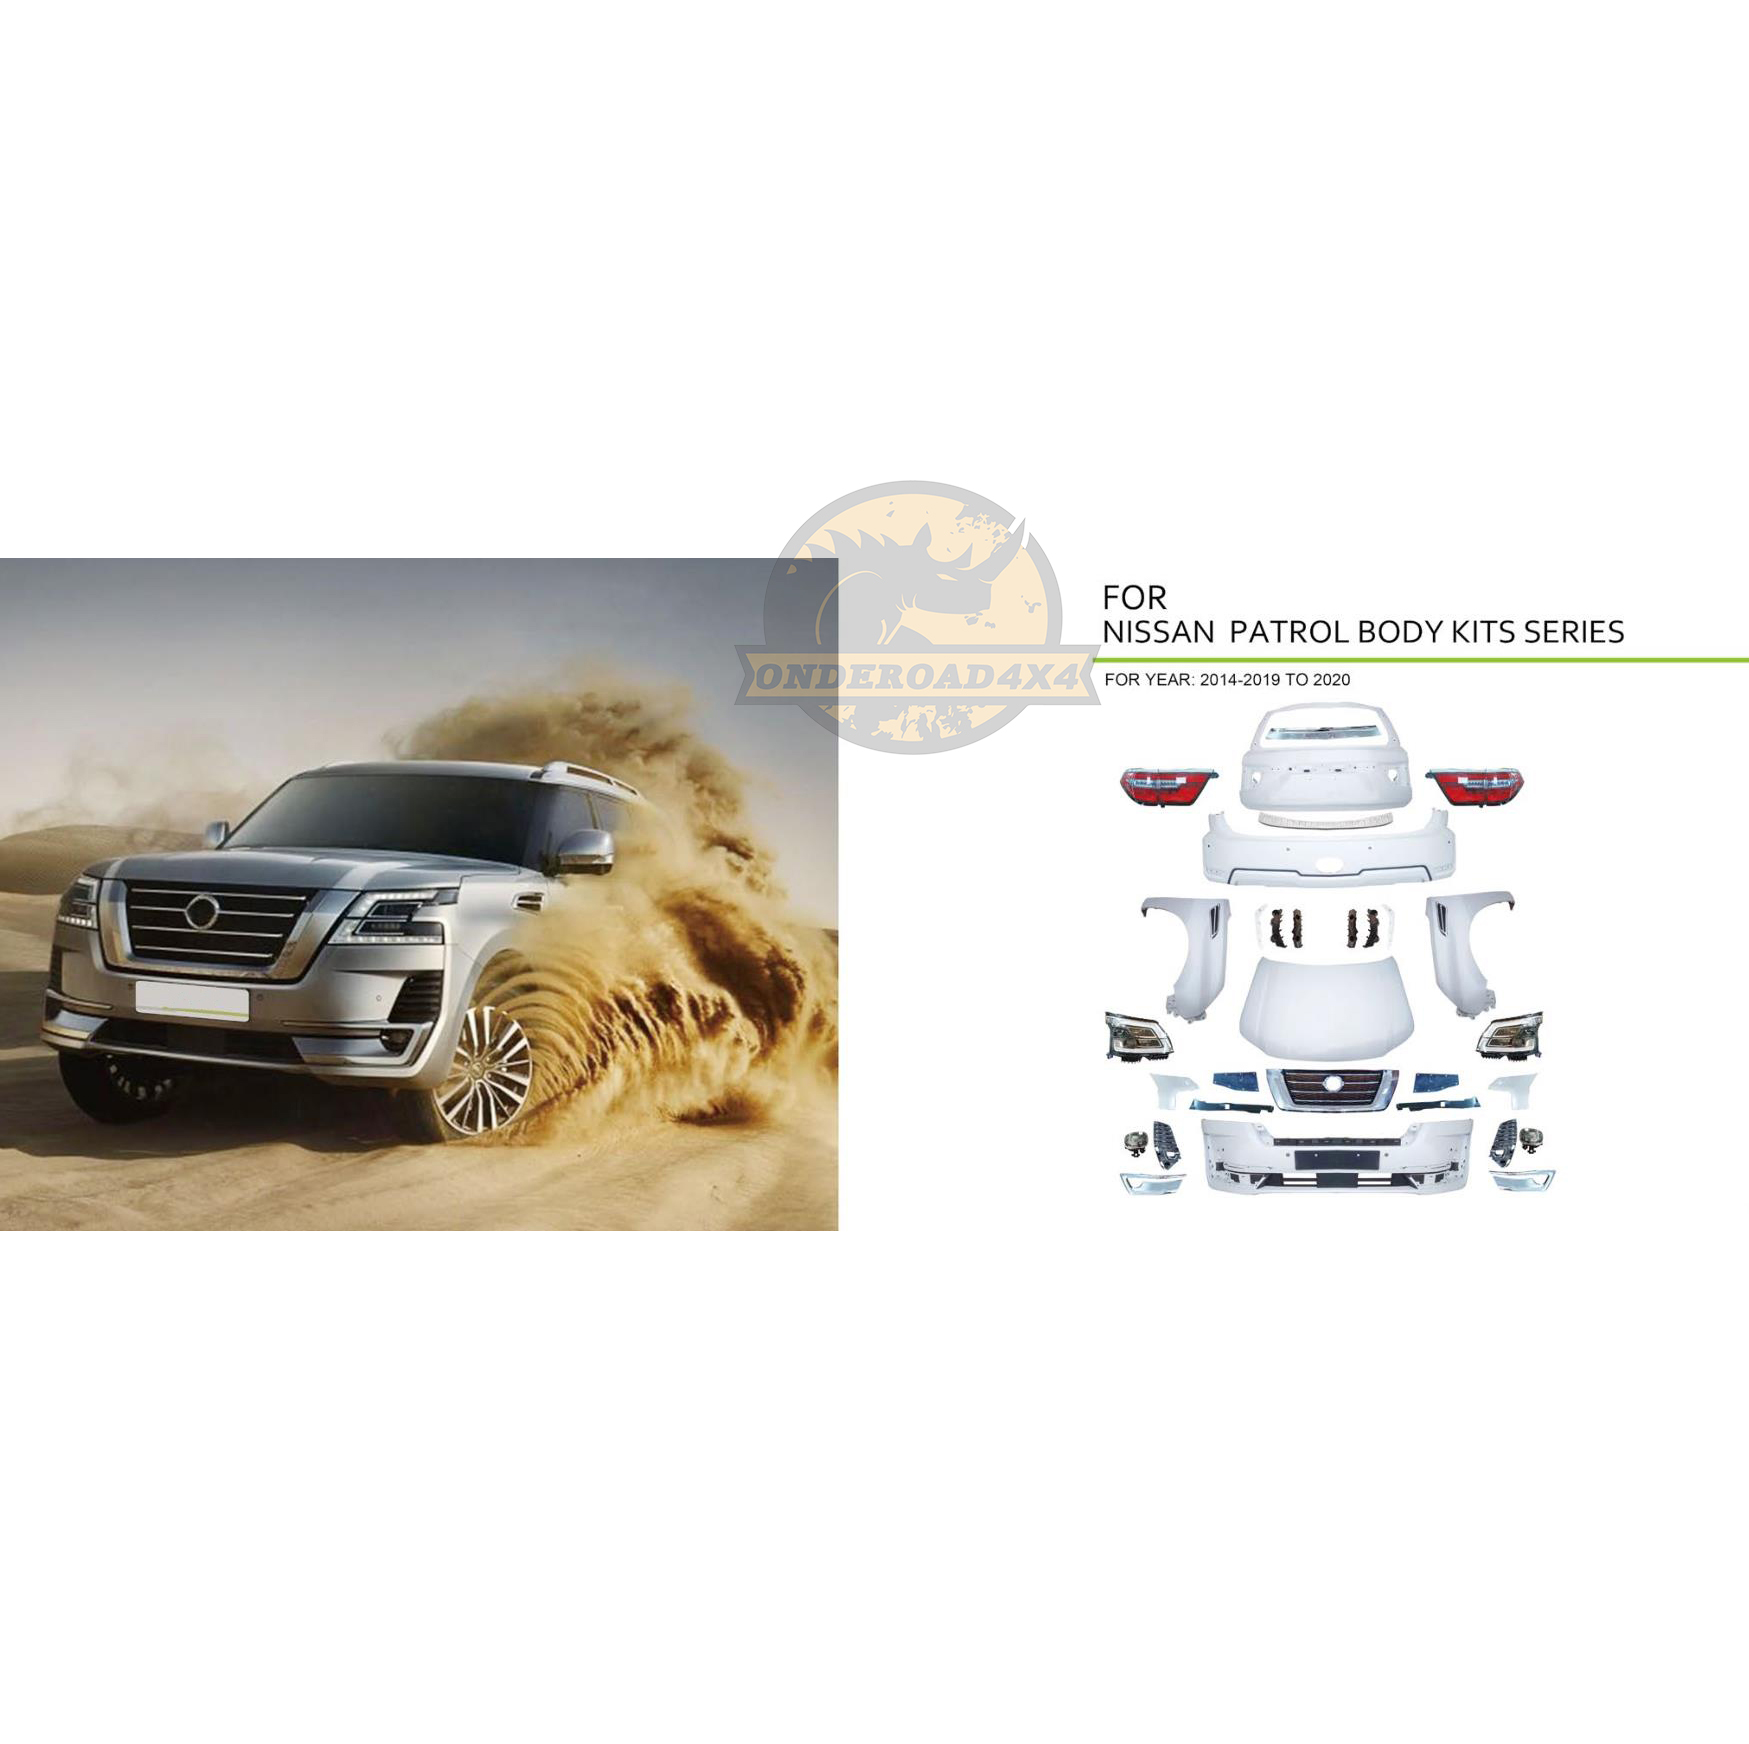 Hot Sale For Nissan Patrol Y62 2014 2019 Upgrade To 2020 Year Auto Body Kit For Car Bumpers And Lamp View Old Model Upgrade The New Model Body Kits Onderoad4x4 Product Details From